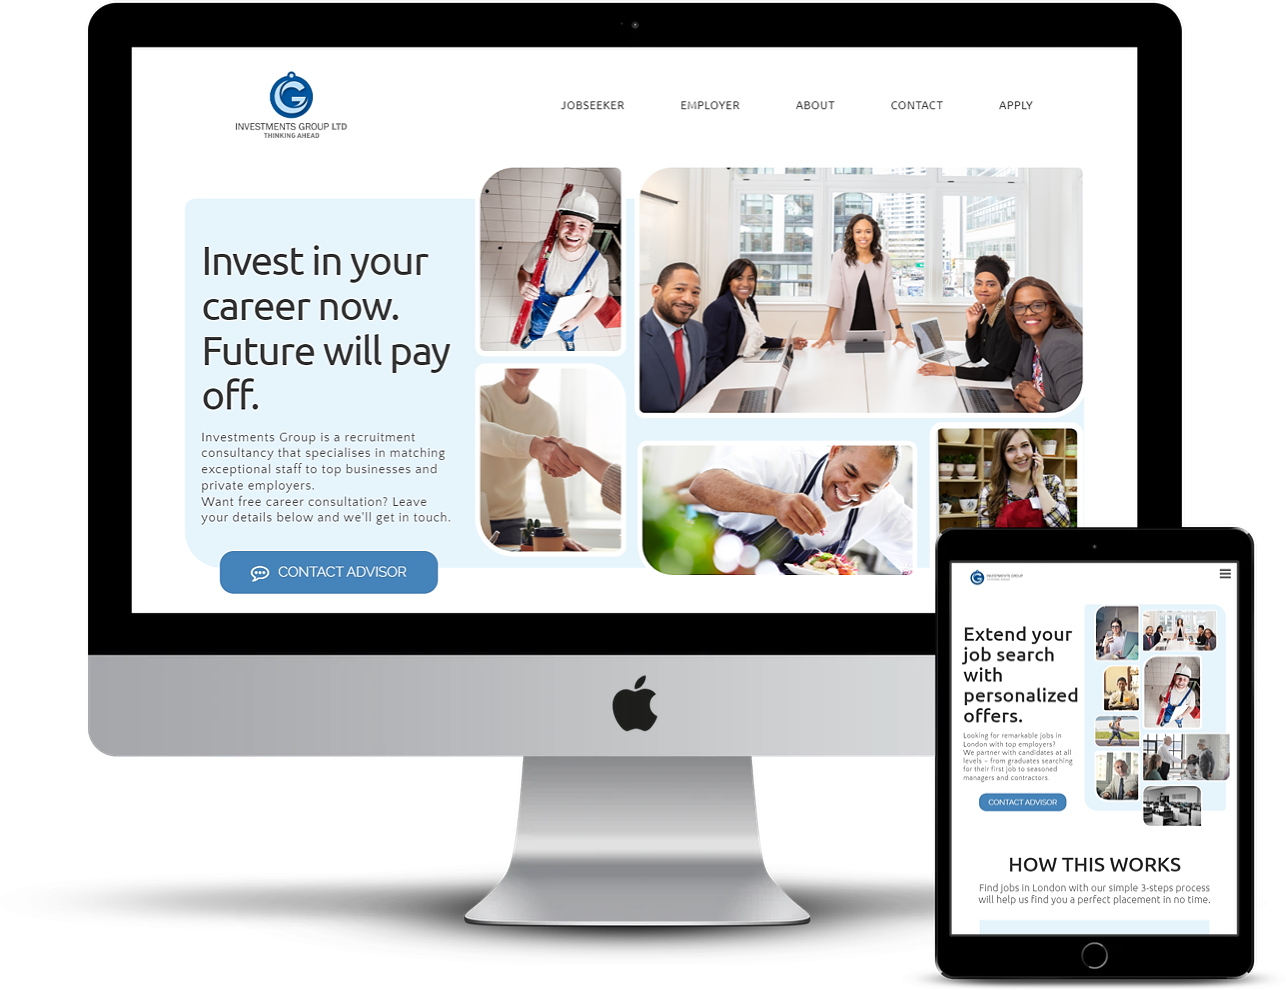 Investments Group website design by NetSwifter - mockup iMac & iPad